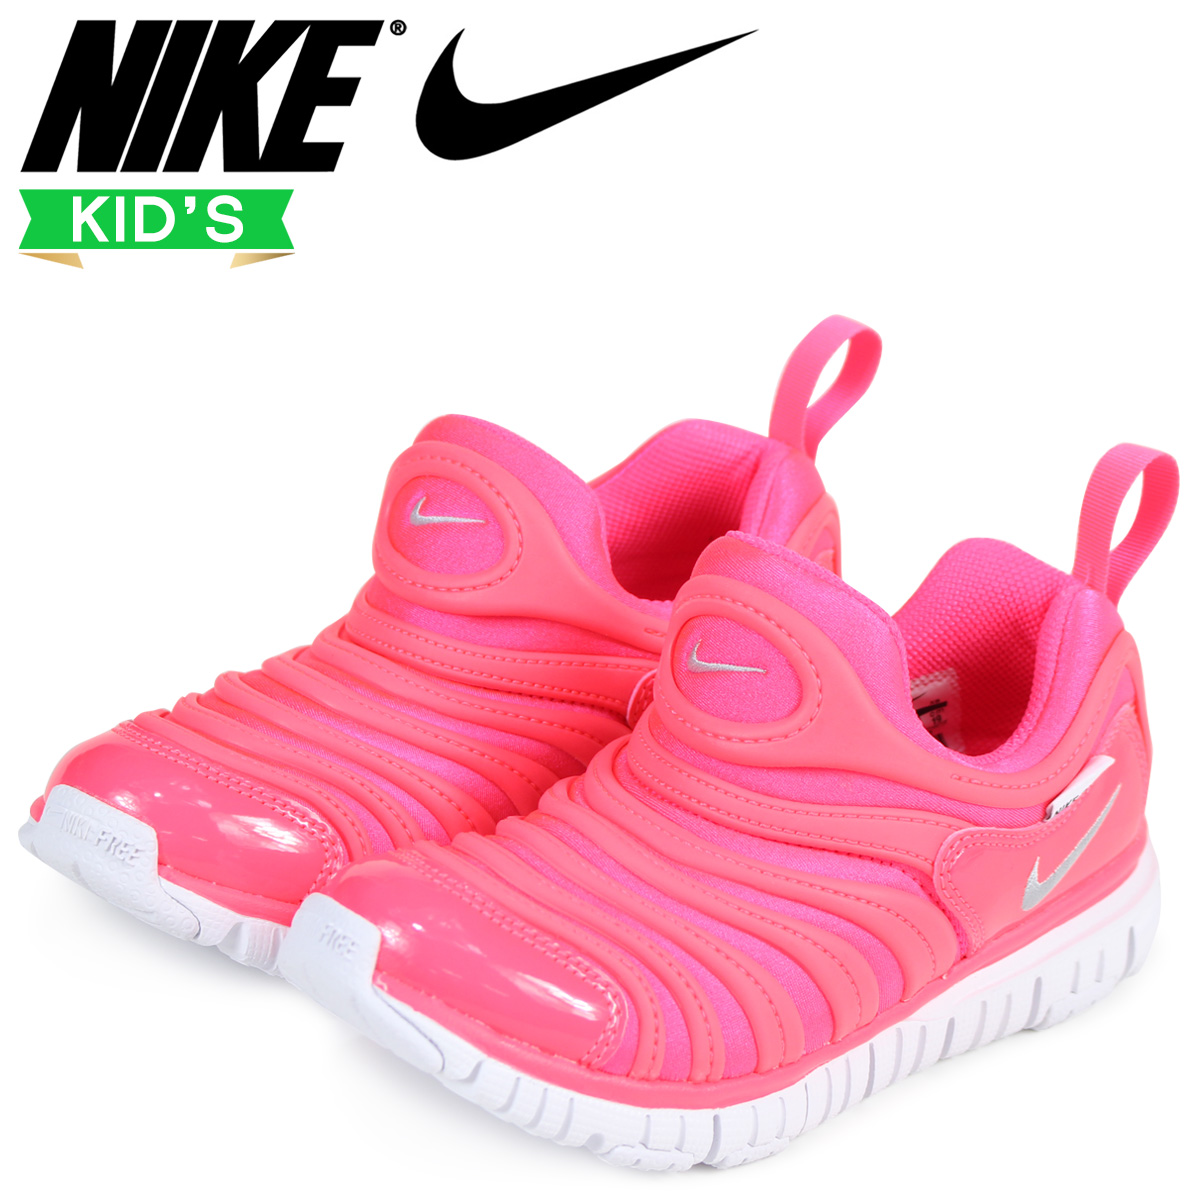 sugar online shop nike nike dynamo free kids sneakers dynamo free ps 343 738 620 pink load. Black Bedroom Furniture Sets. Home Design Ideas